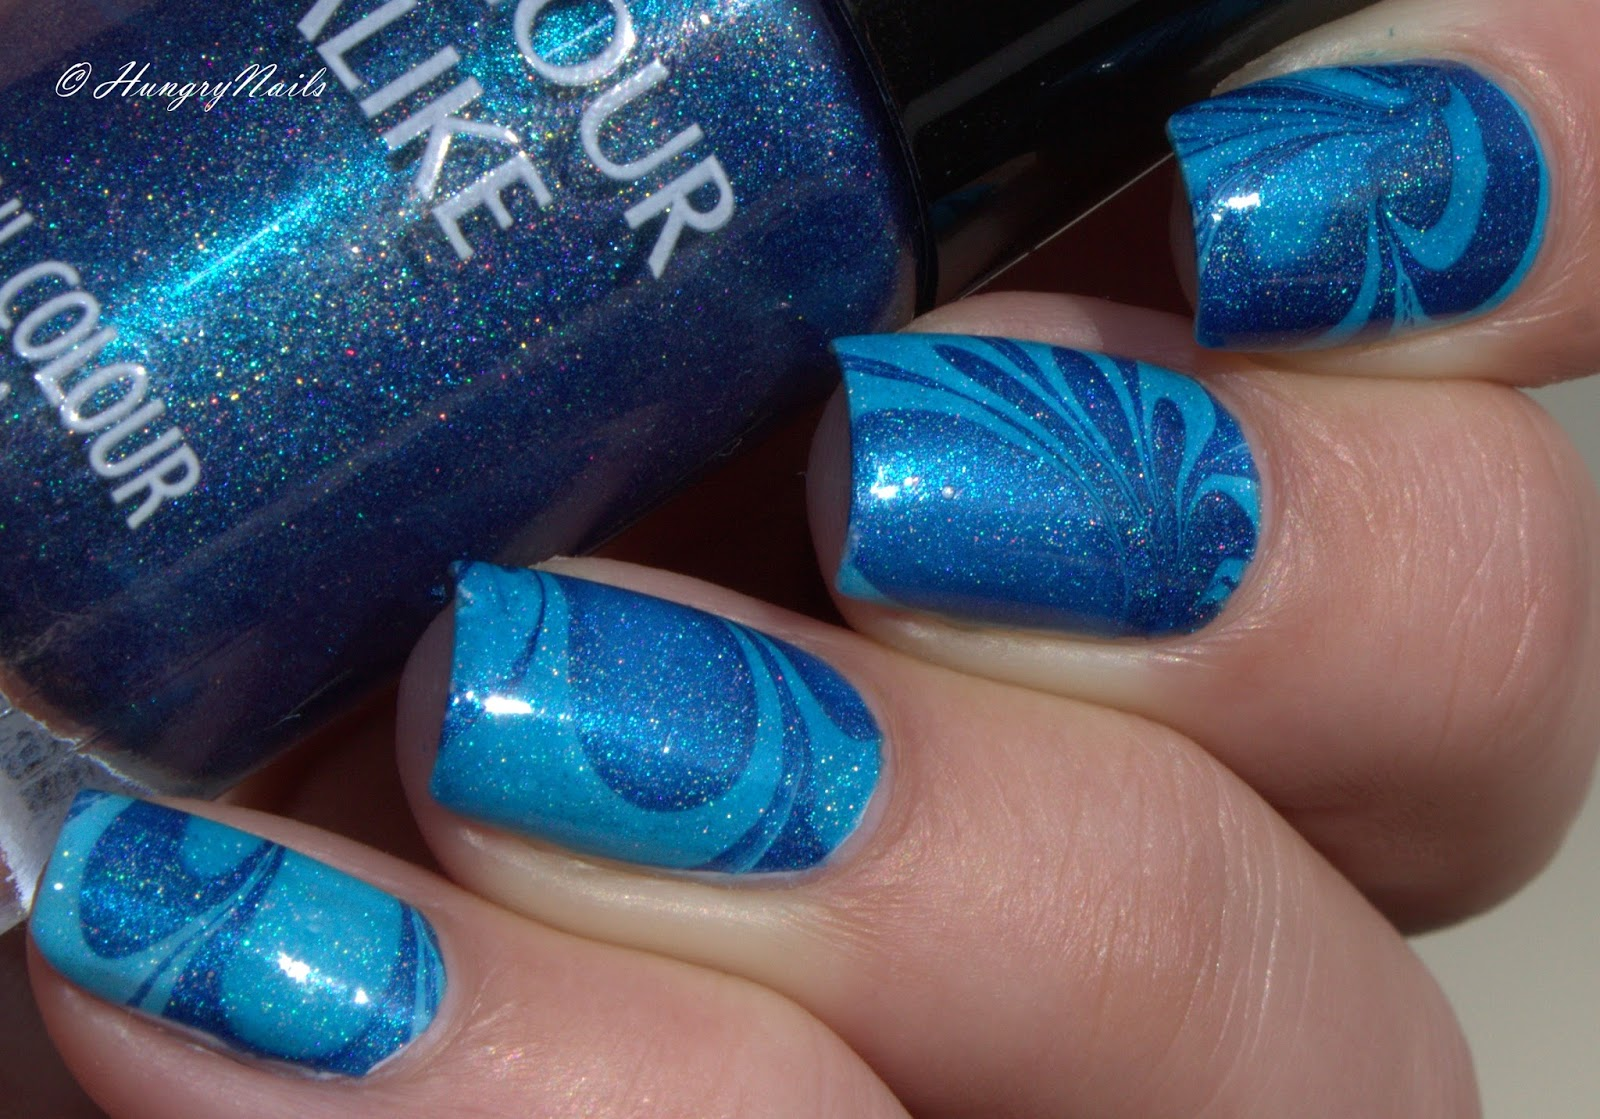 http://hungrynails.blogspot.com/2015/02/blue-friday-spezial-water-marble.html